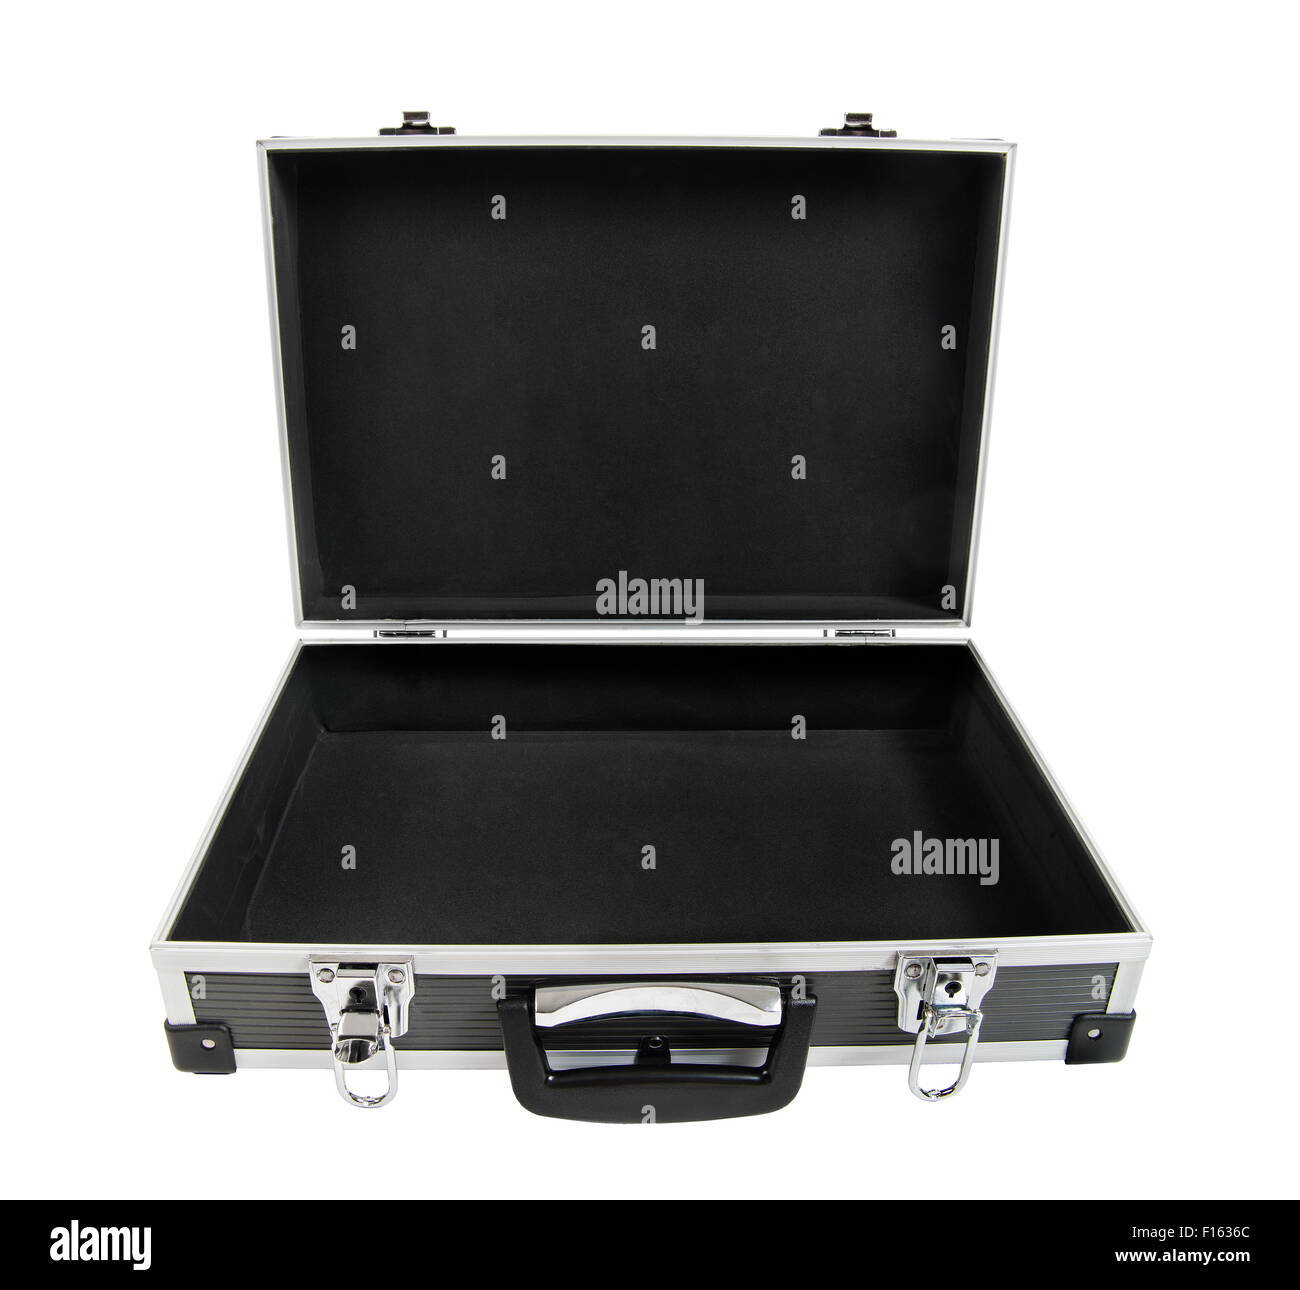 armored black case for money, on white background; isolated - Stock Image